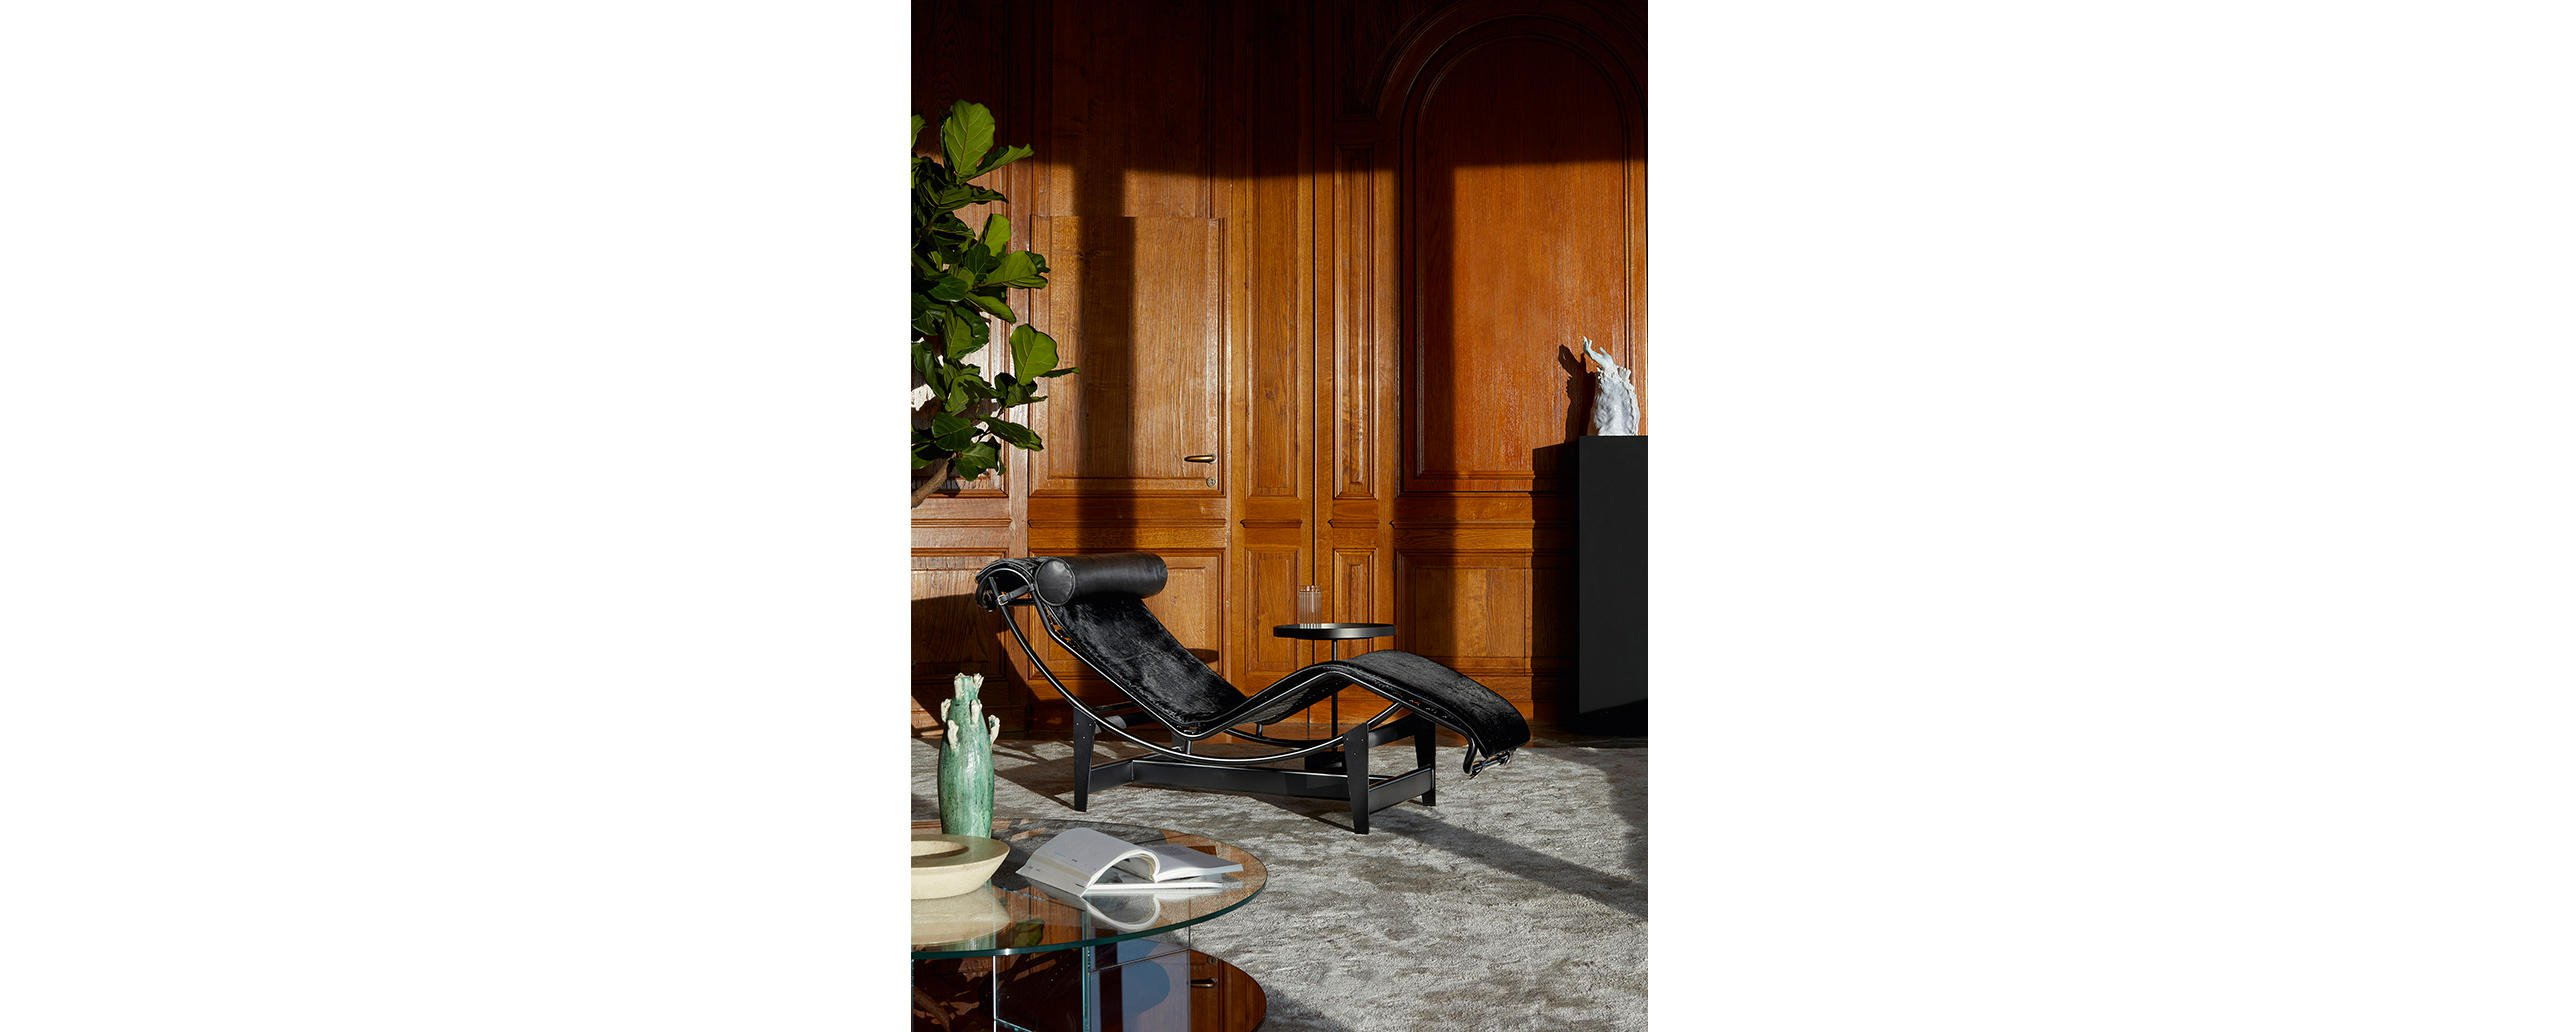 4_cassina_lc4_chaise-longue_le_corbusier_jeanneret_perriand_all_black_photodepasqualemaffini